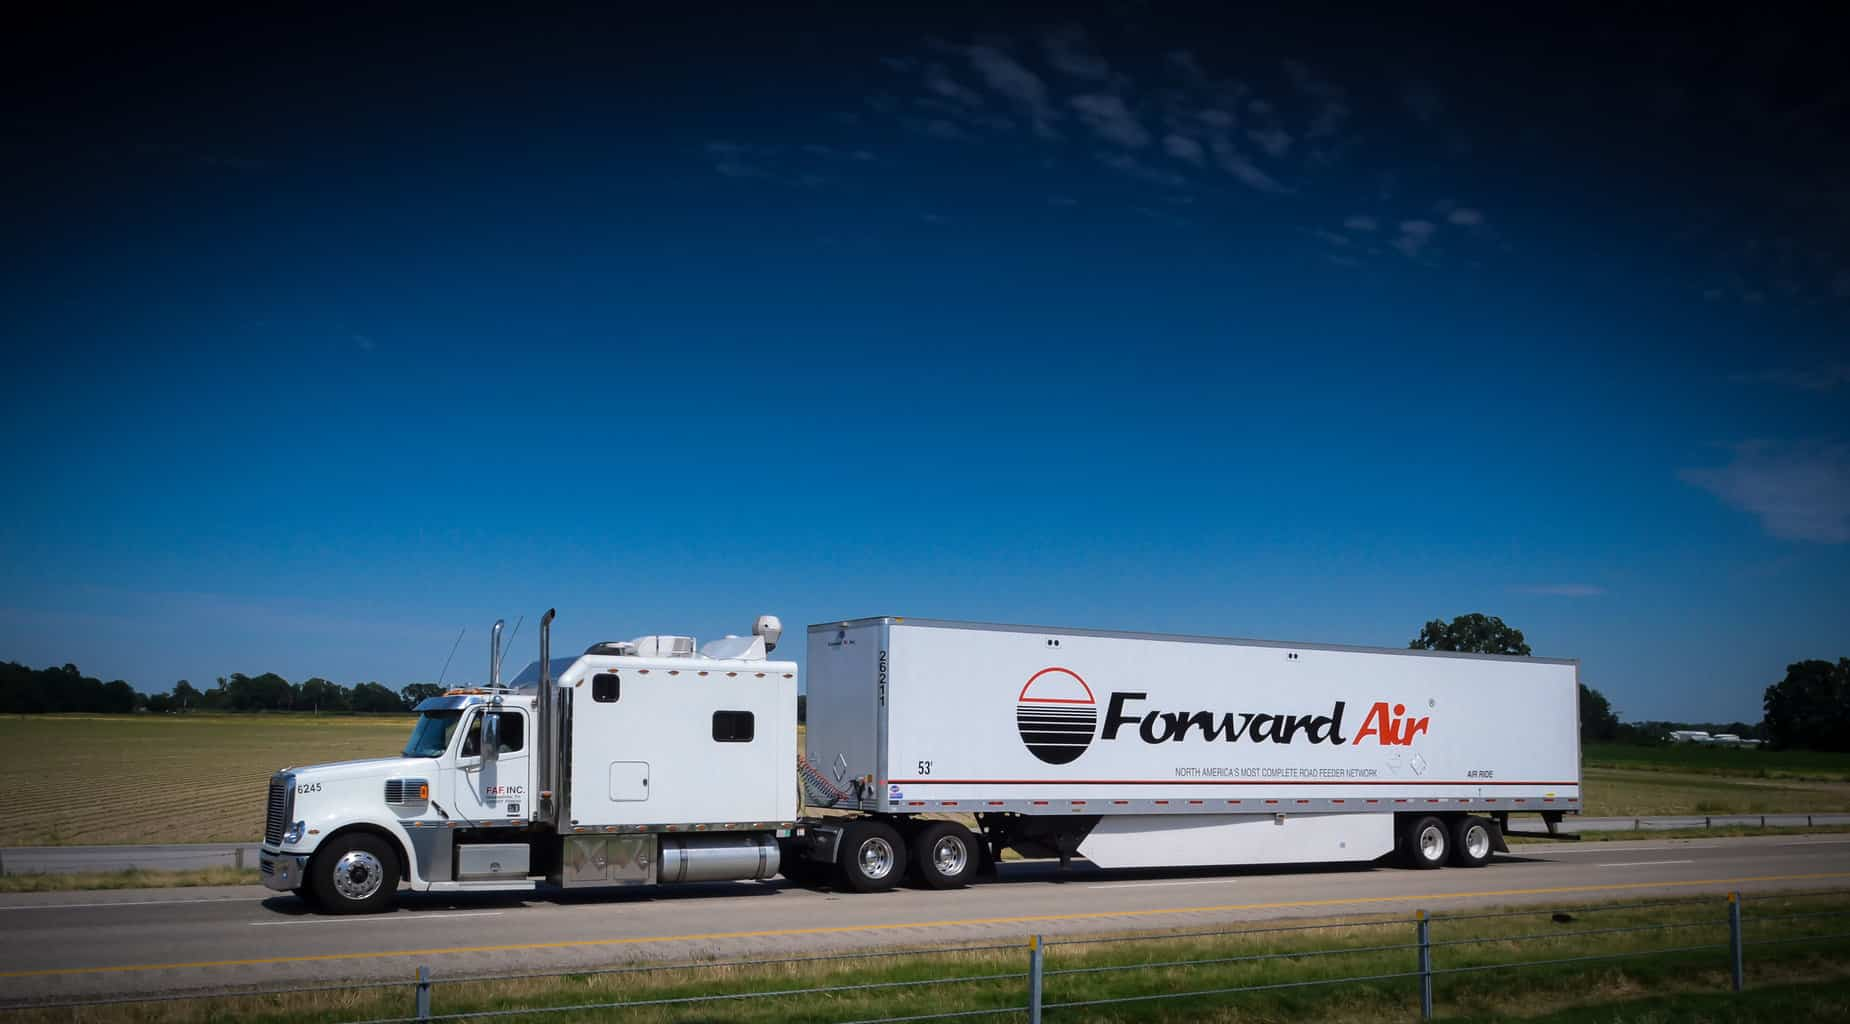 Forward Air: Changes to Management Team and Board